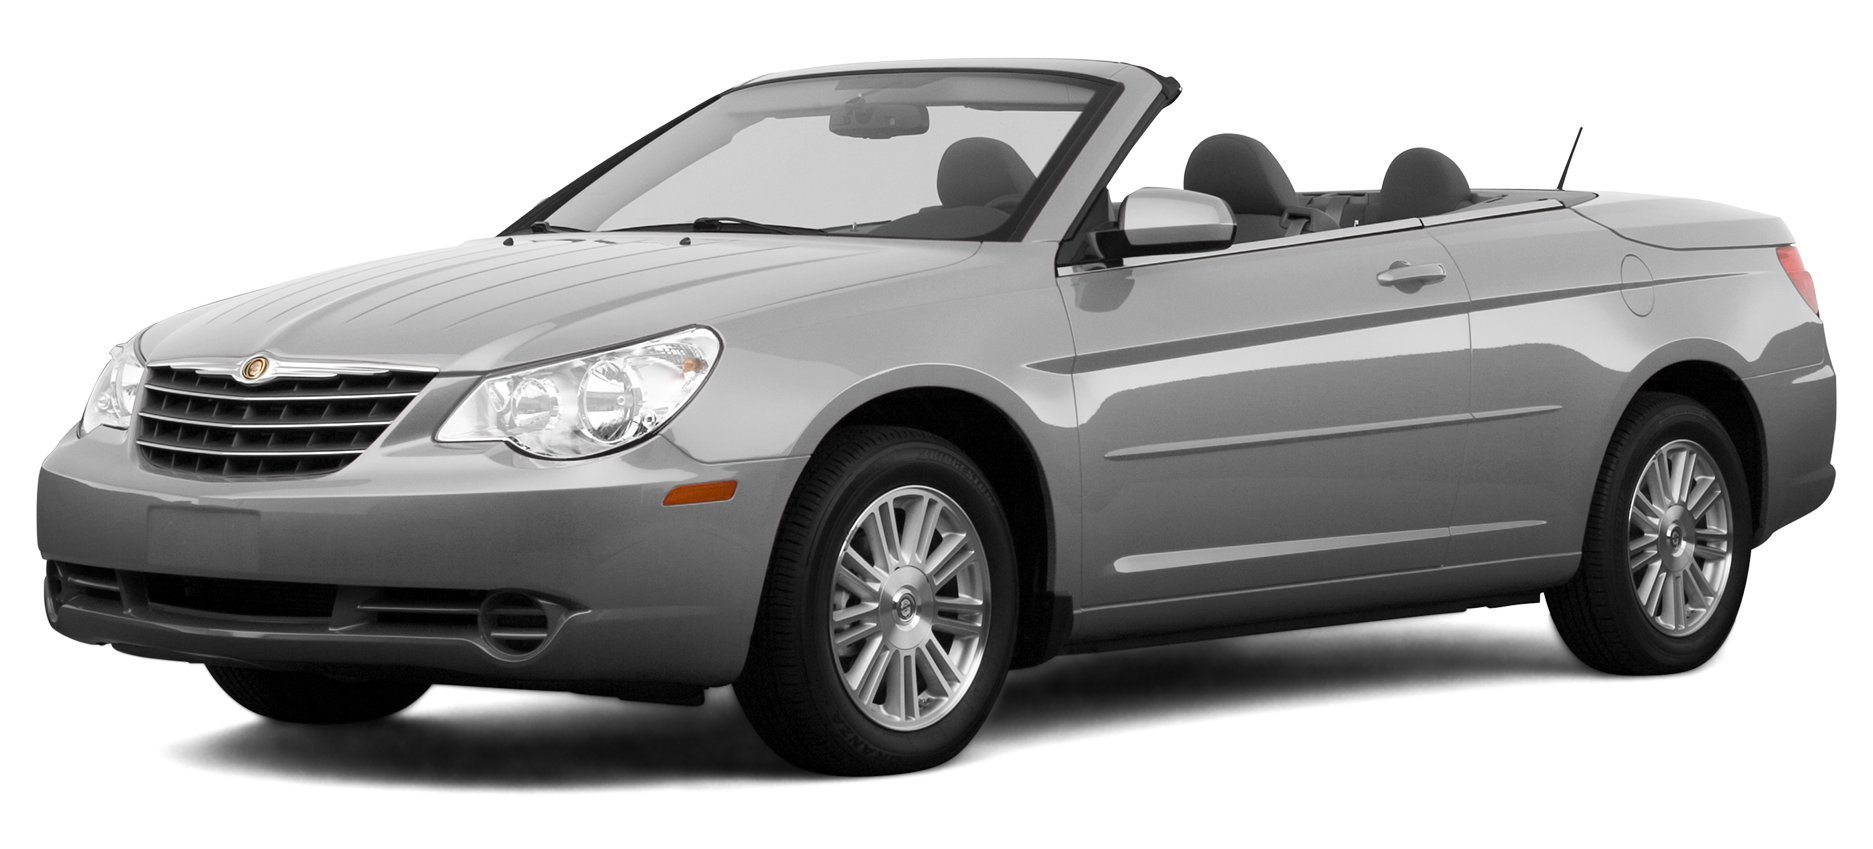 Amazon Com 2008 Chrysler Sebring Lx Reviews Images And Specs